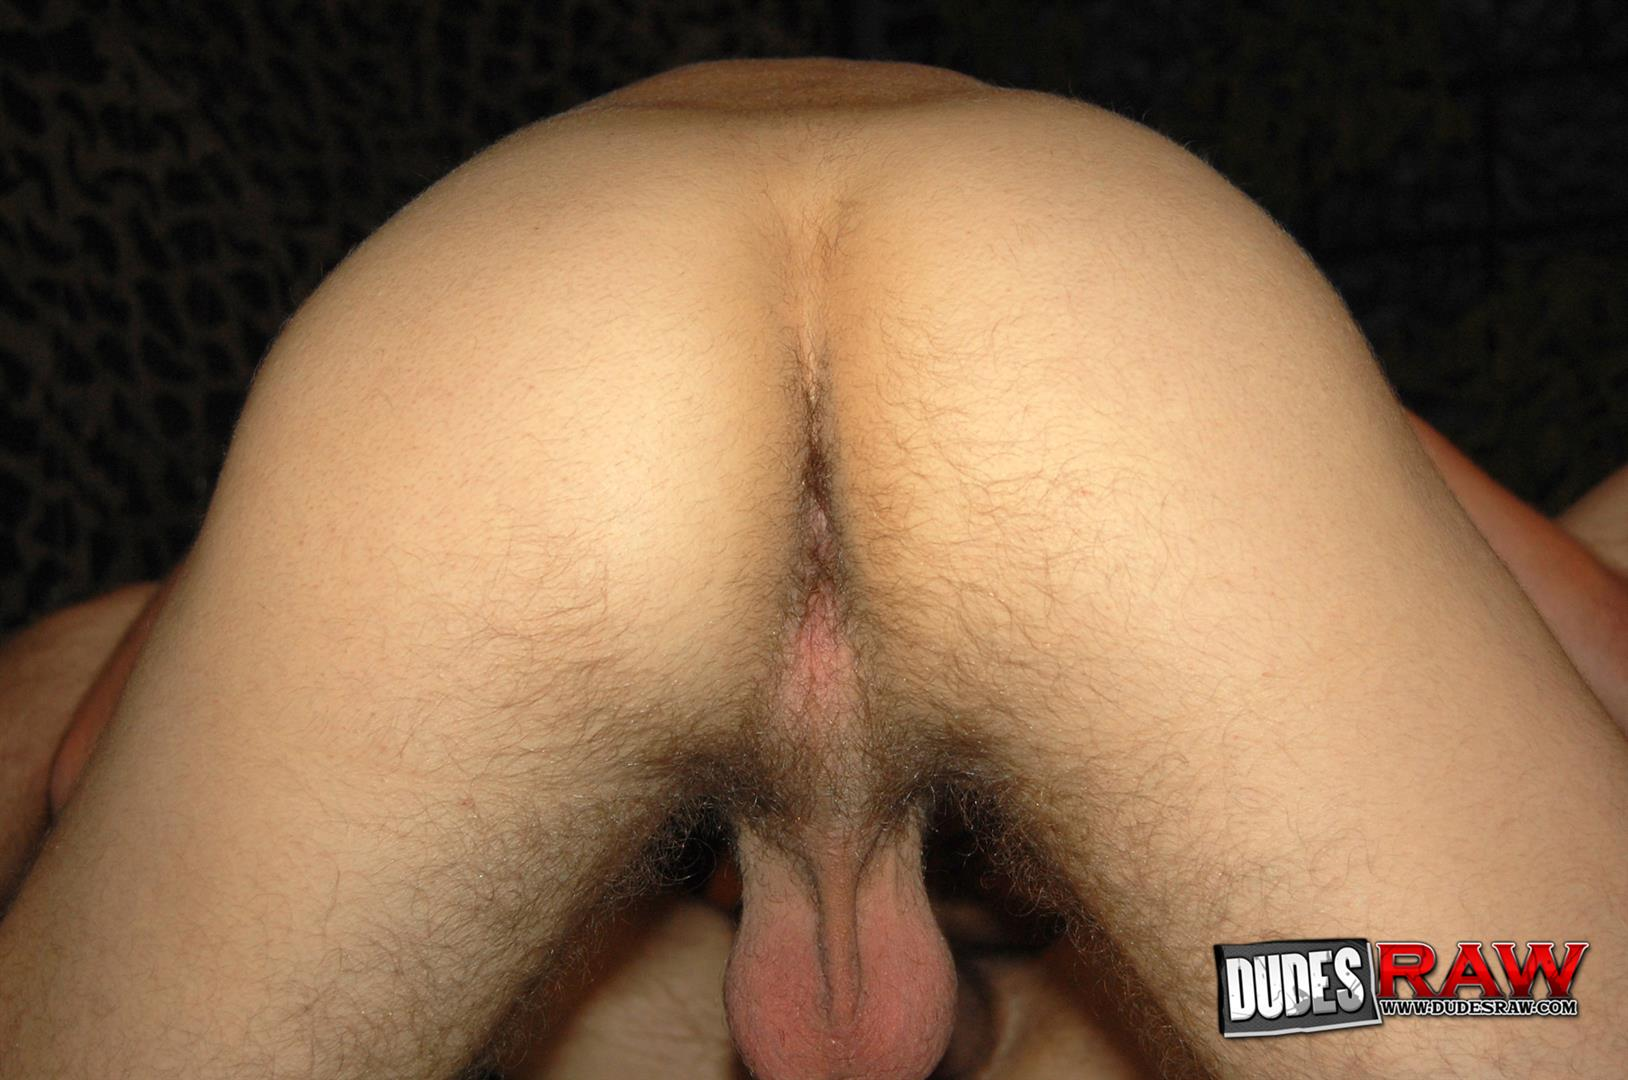 Dudes Raw Jacques Satori and Zeke Stardust Army Guys Barebacking Amateur Gay Porn 13 Army Guys Discover Gay Sex and Bareback Fuck Each Other